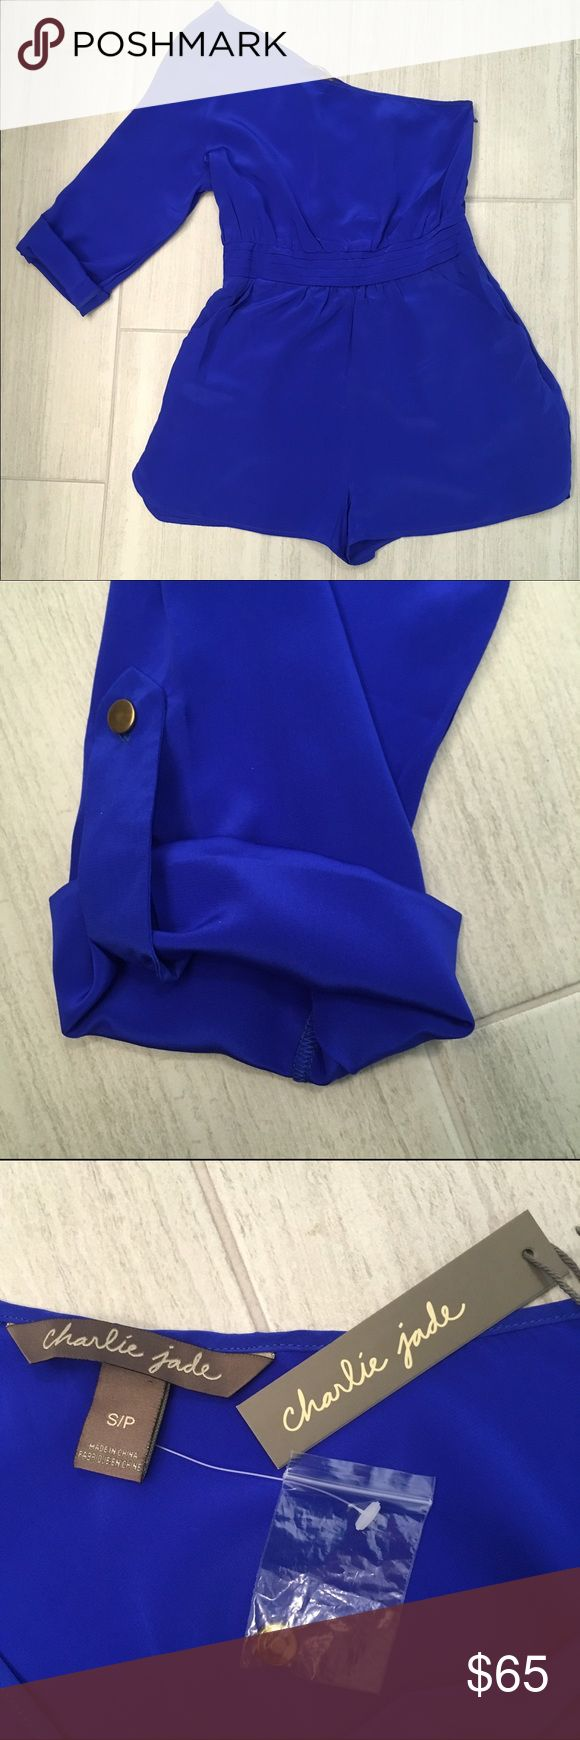 "NWT Charlie Jade one shoulder silk romper Stunning blue Charlie Jade one sleeve silk romper                                                                        🌟Size- Women's S 🌟Flat Measurements- 16.5"" bust 30"" from top of shoulder to hem 🌟Material- 100% Silk 🌟Condition- NWT Charlie Jade Other"